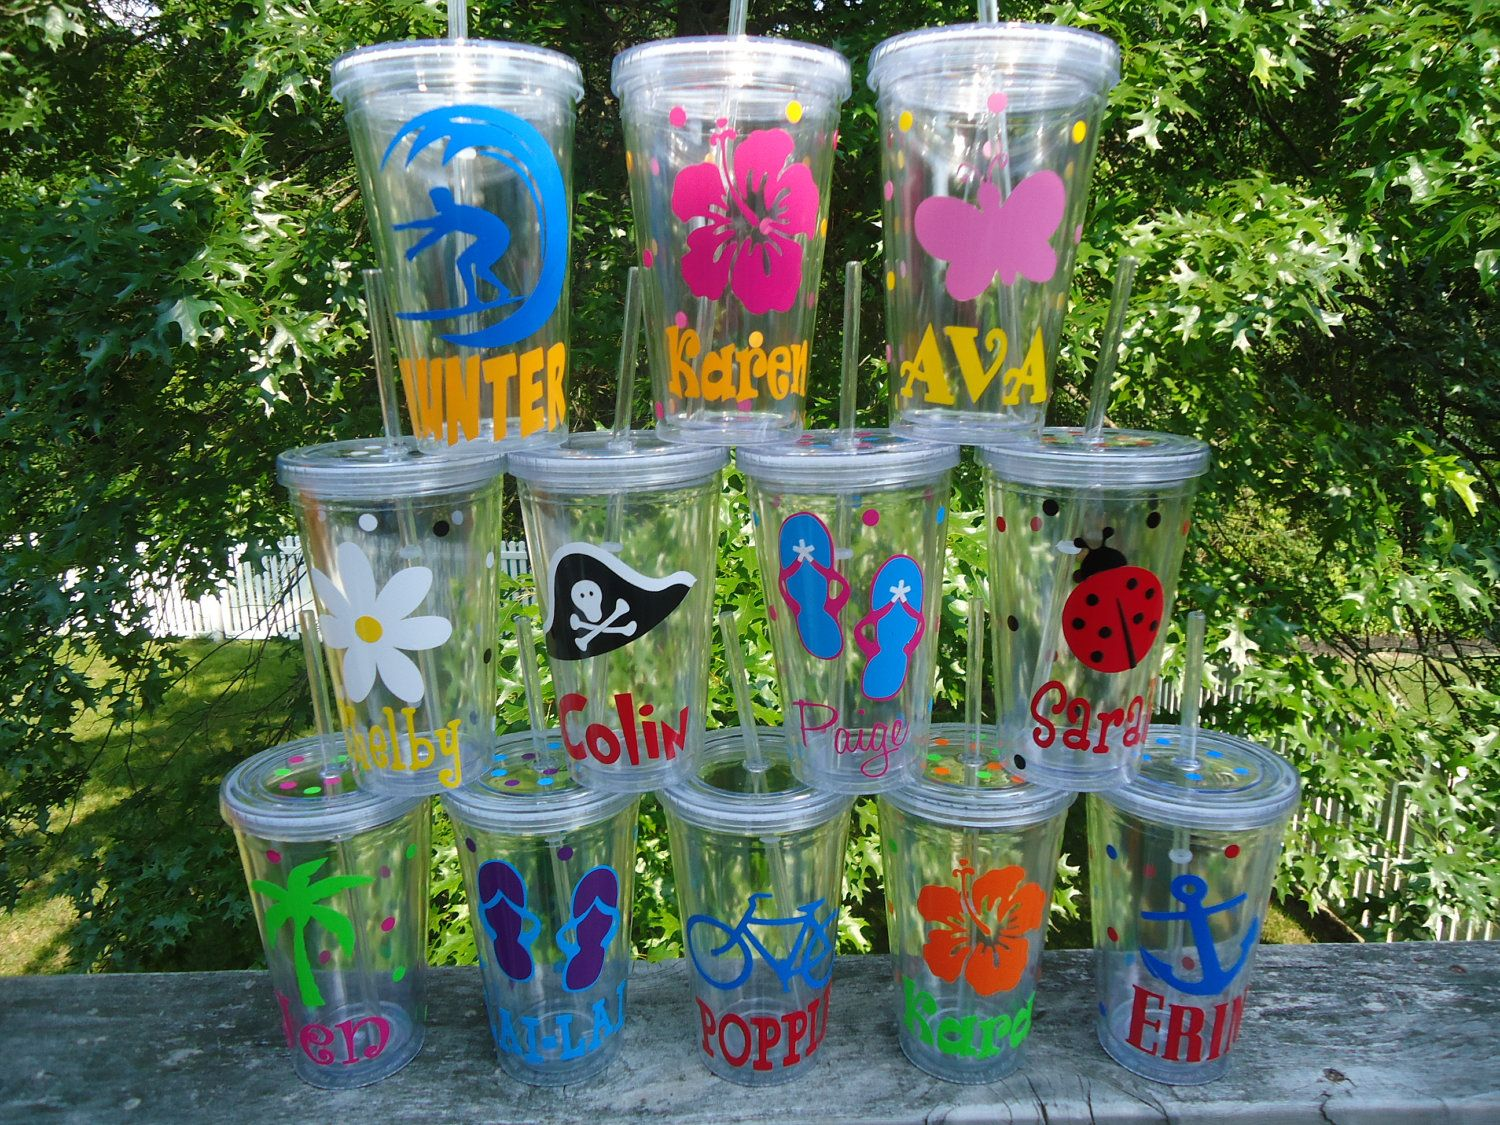 Pool Party Decorations Ideas cheers to summer surfer style kids pool party ideas 6 Personalized Acrylic Tumblers New Summer Designs At The Pool Or Beach Or For Party